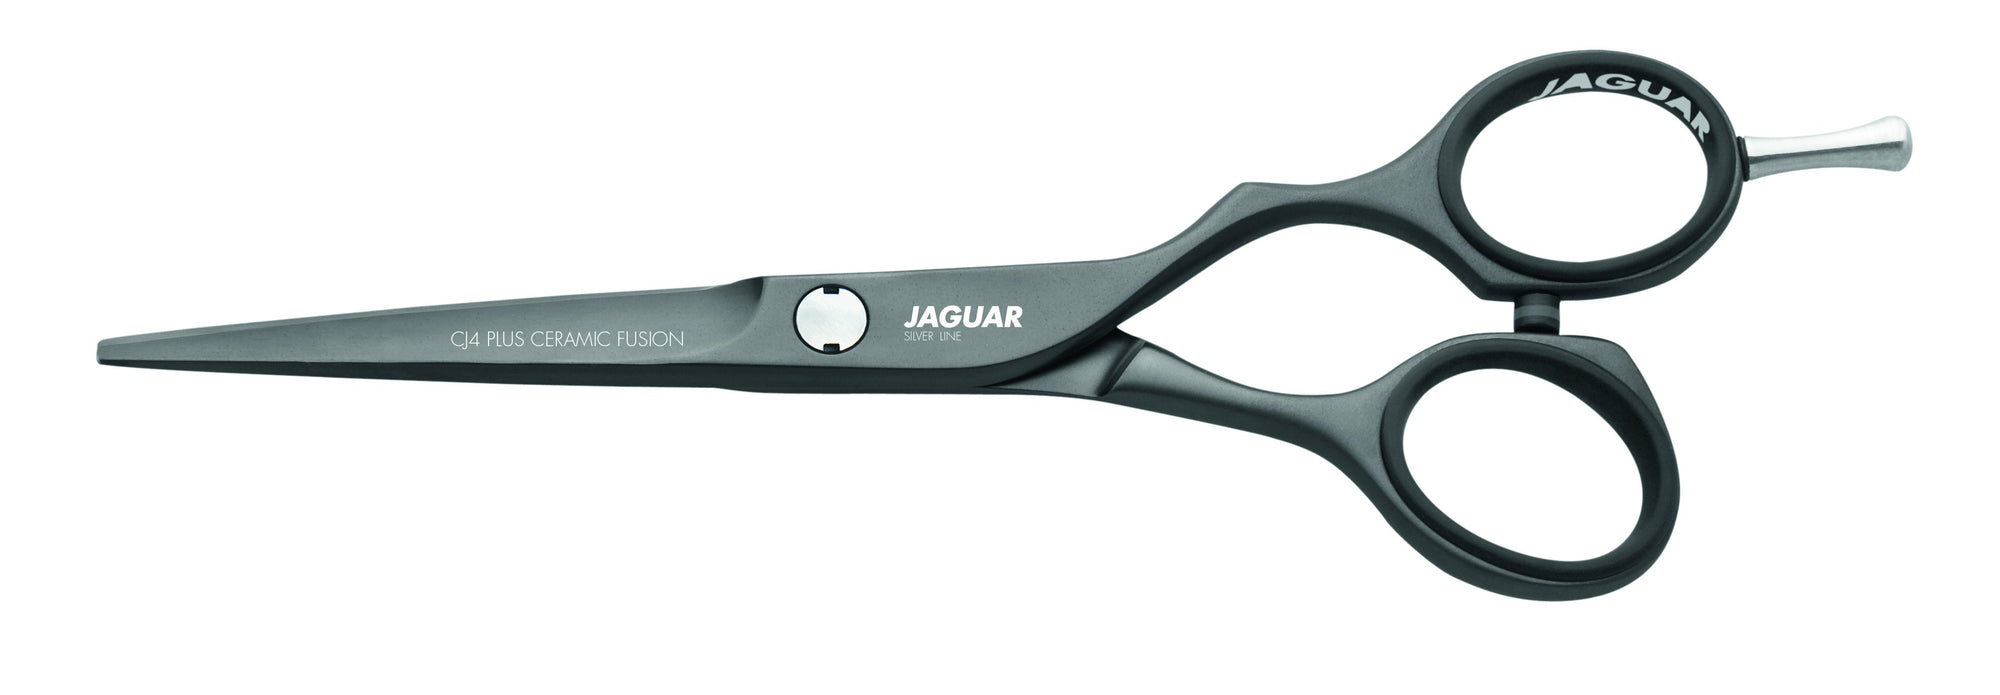 Jaguar CJ4 Plus Ceramic Fusion